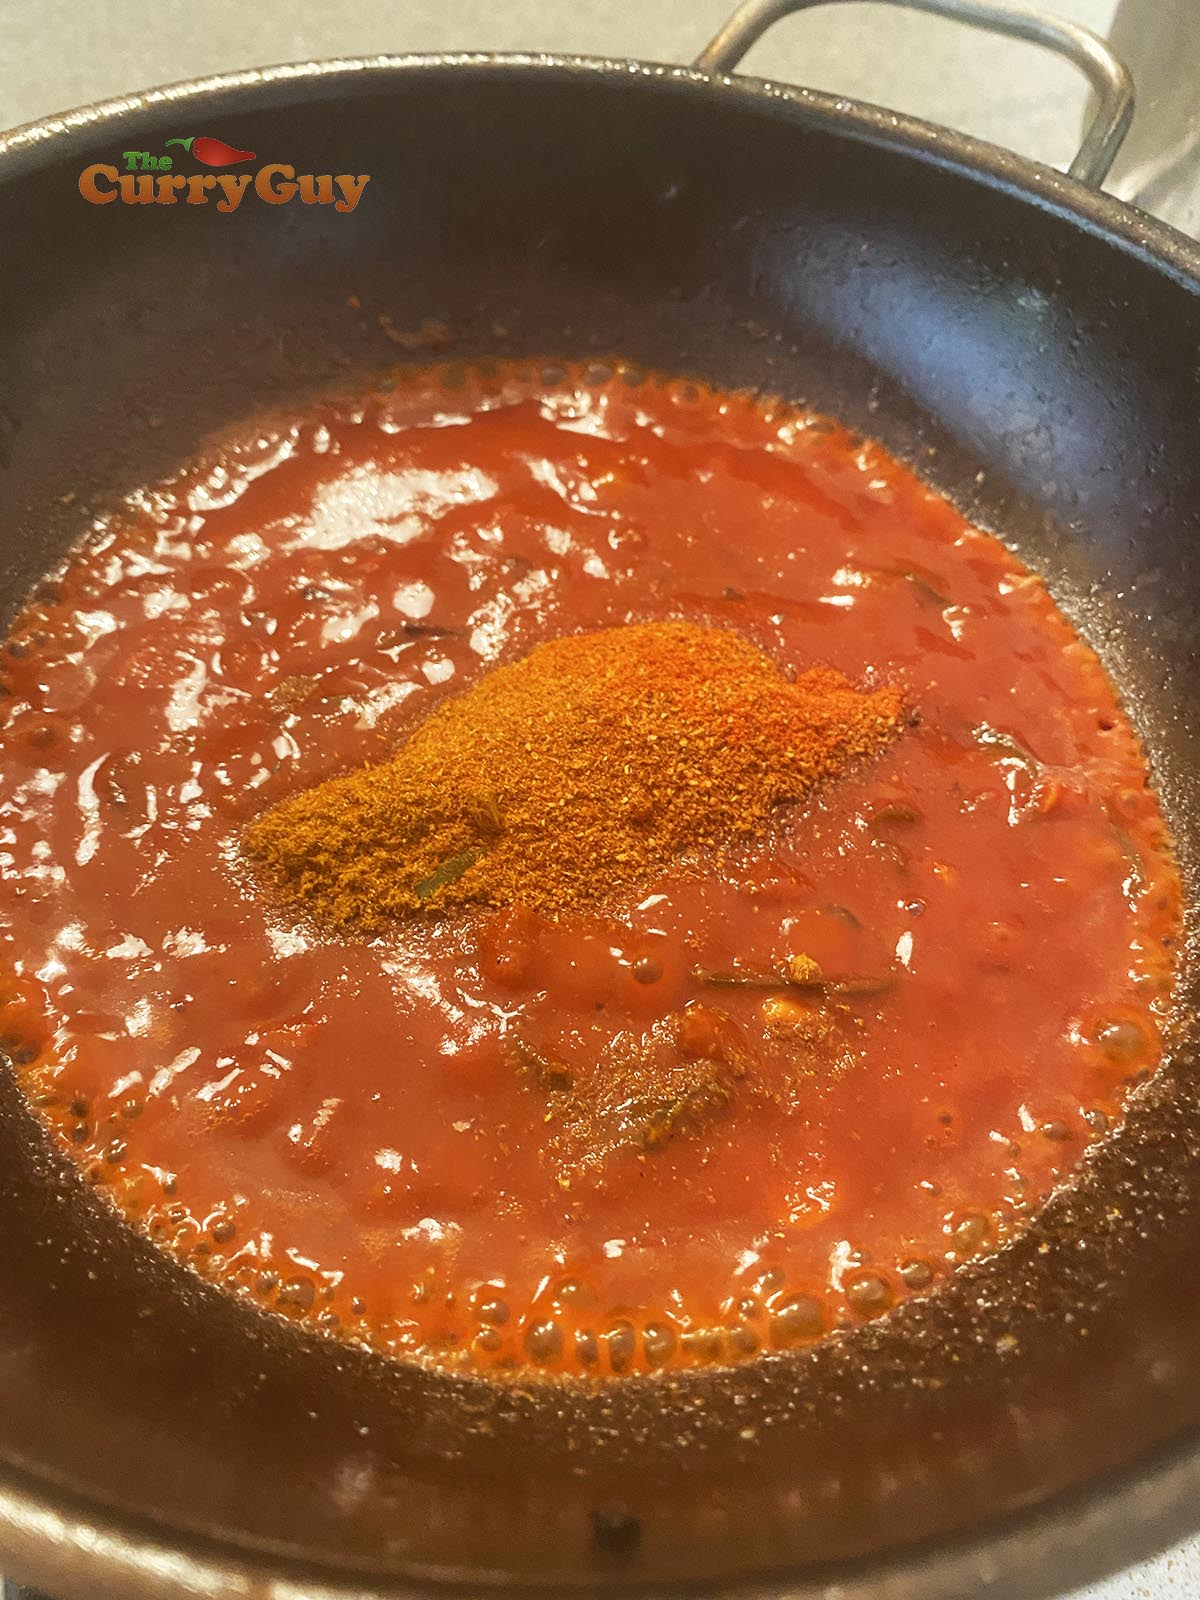 Stirring ground spices into the mix